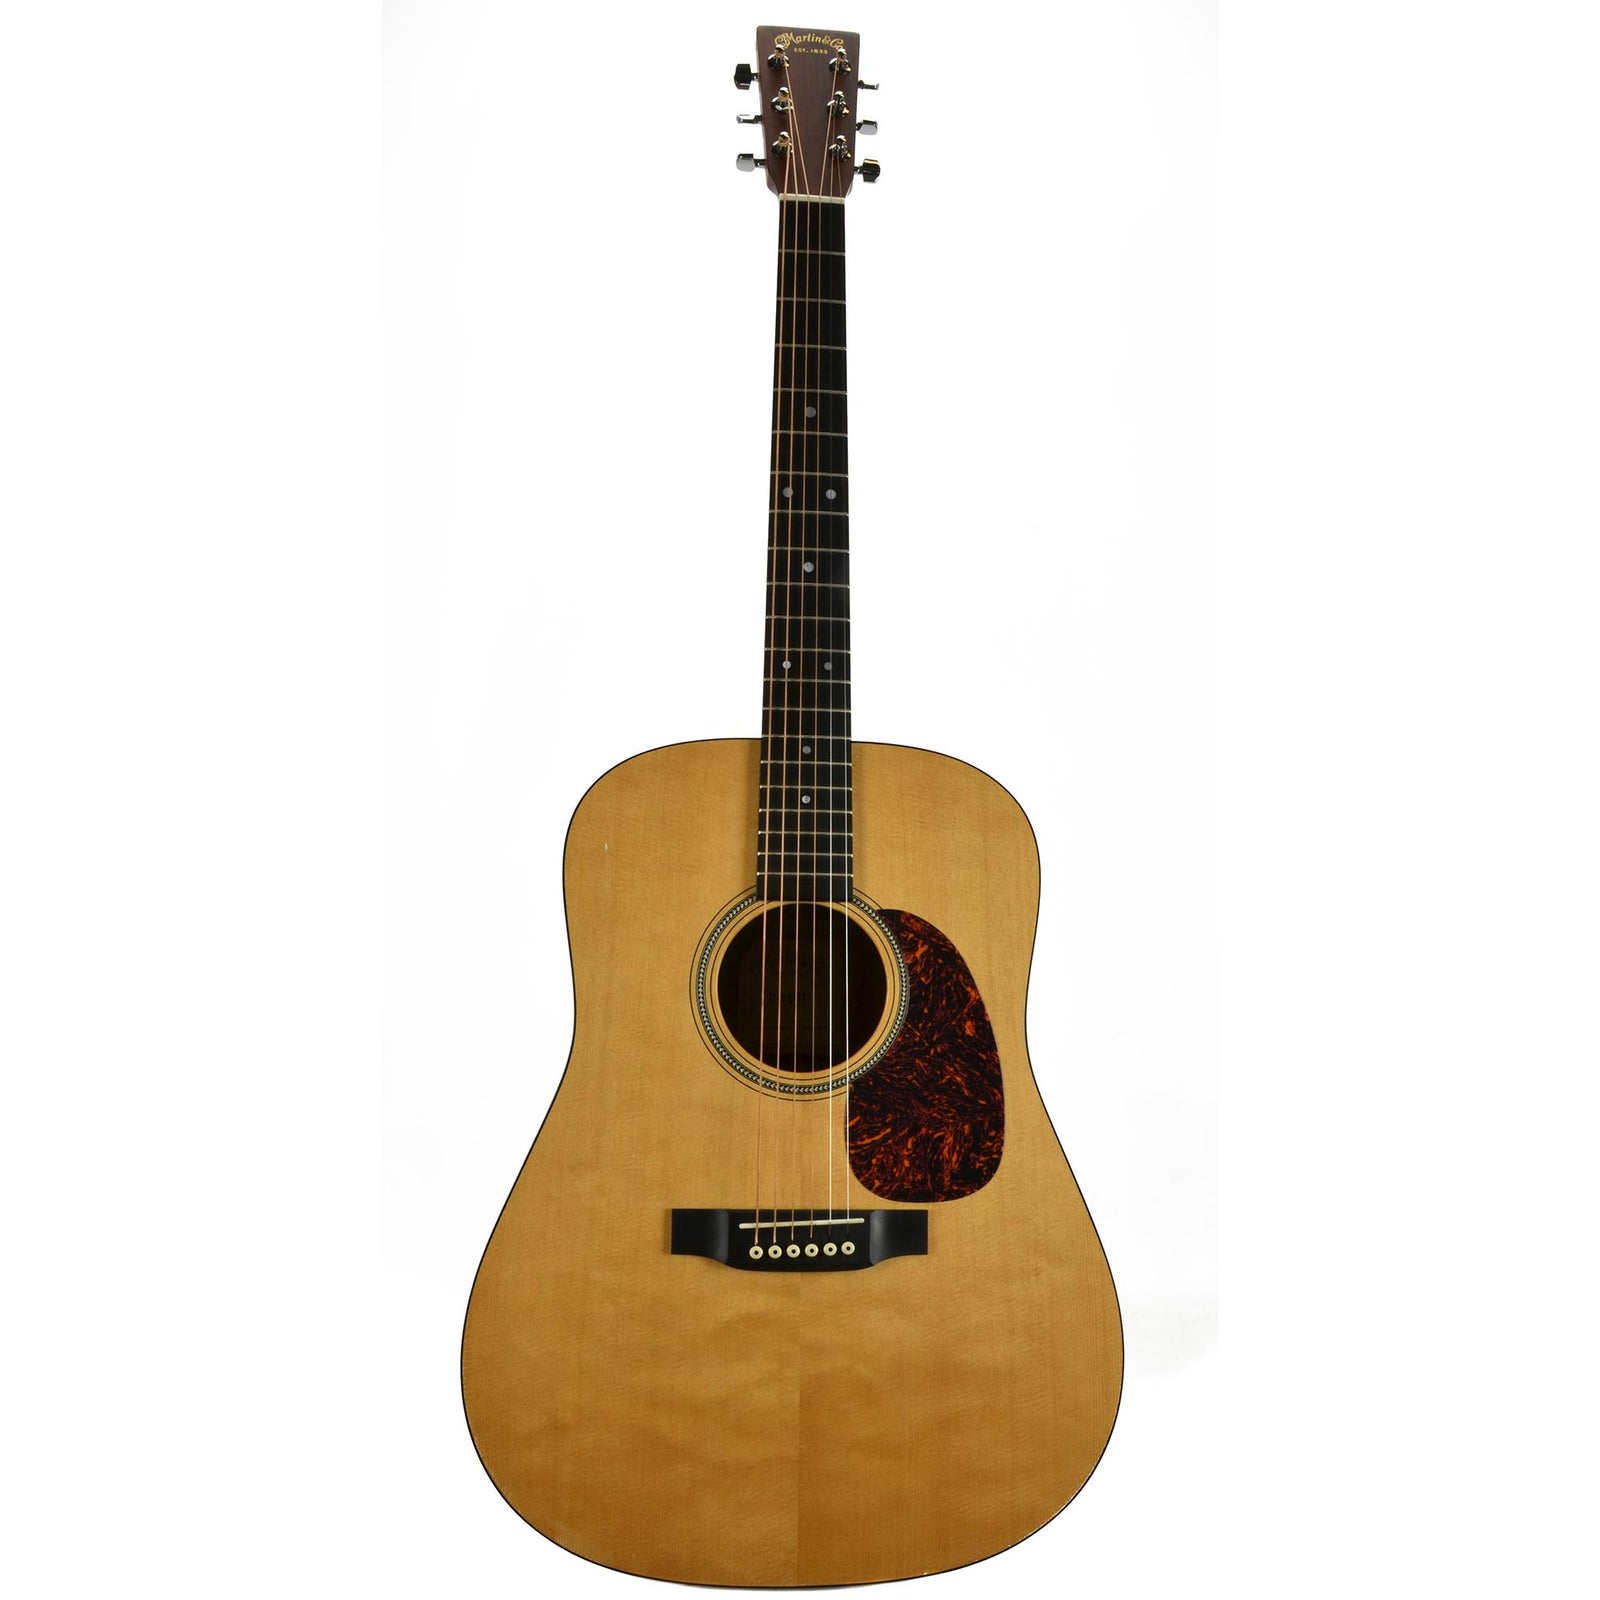 Martin D-16GT With OHSC - Used - Image: 3